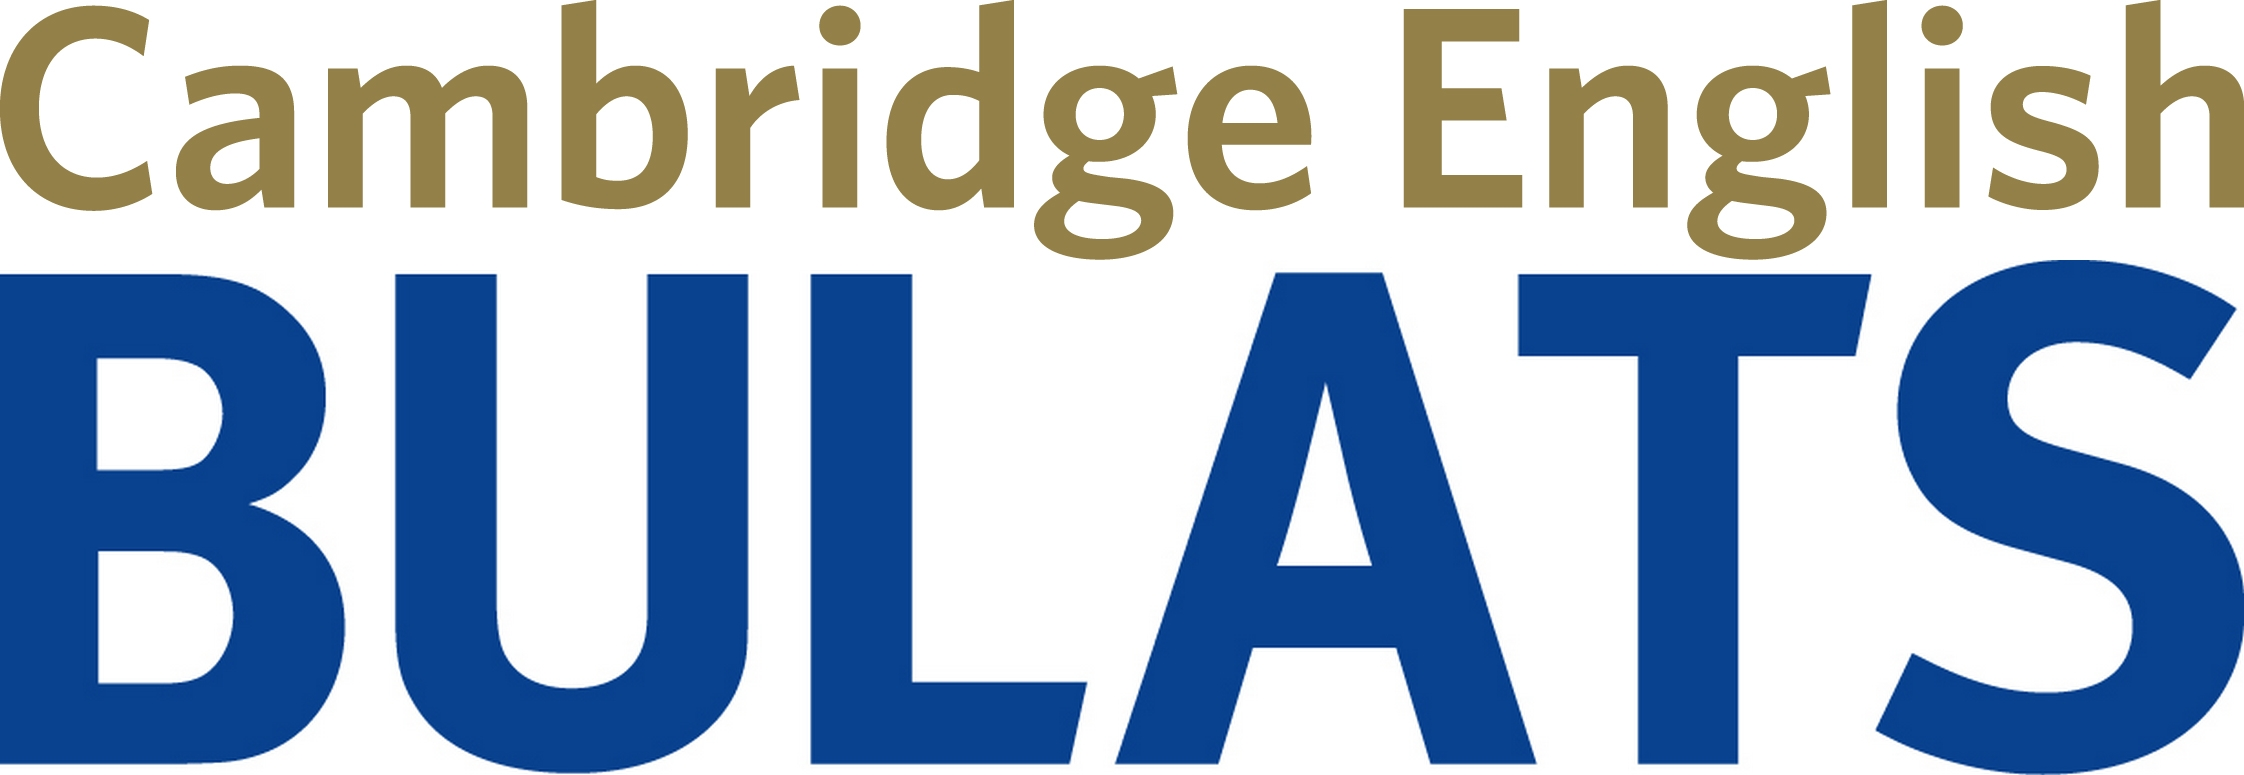 Logo_CambridgeEnglish_BULATS